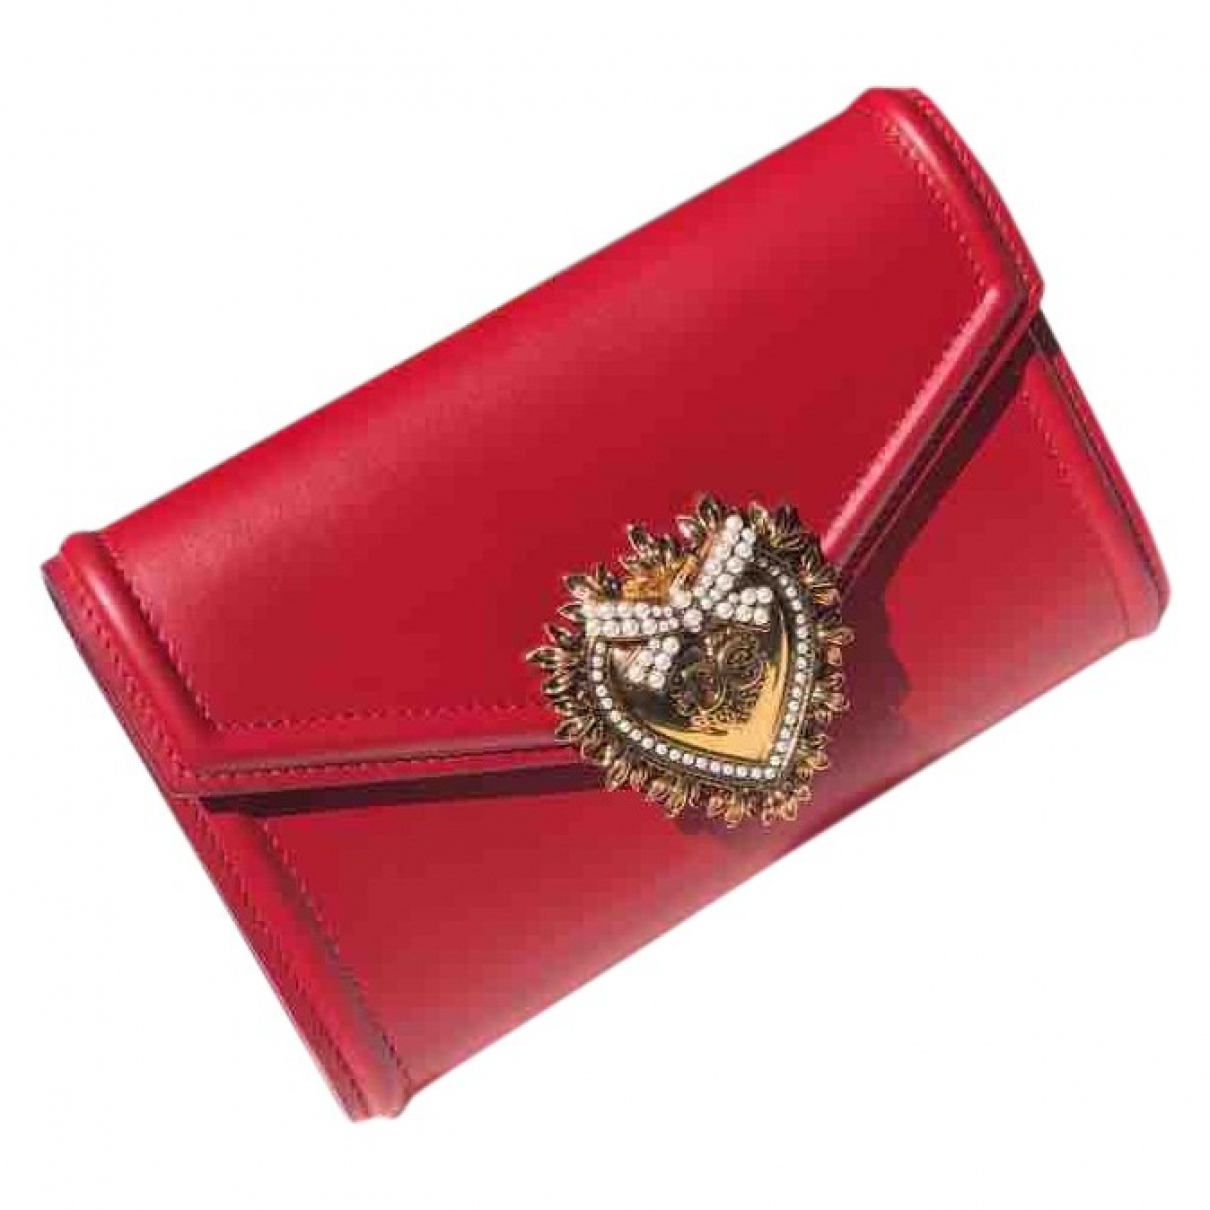 Dolce & Gabbana Devotion Red Leather handbag for Women \N